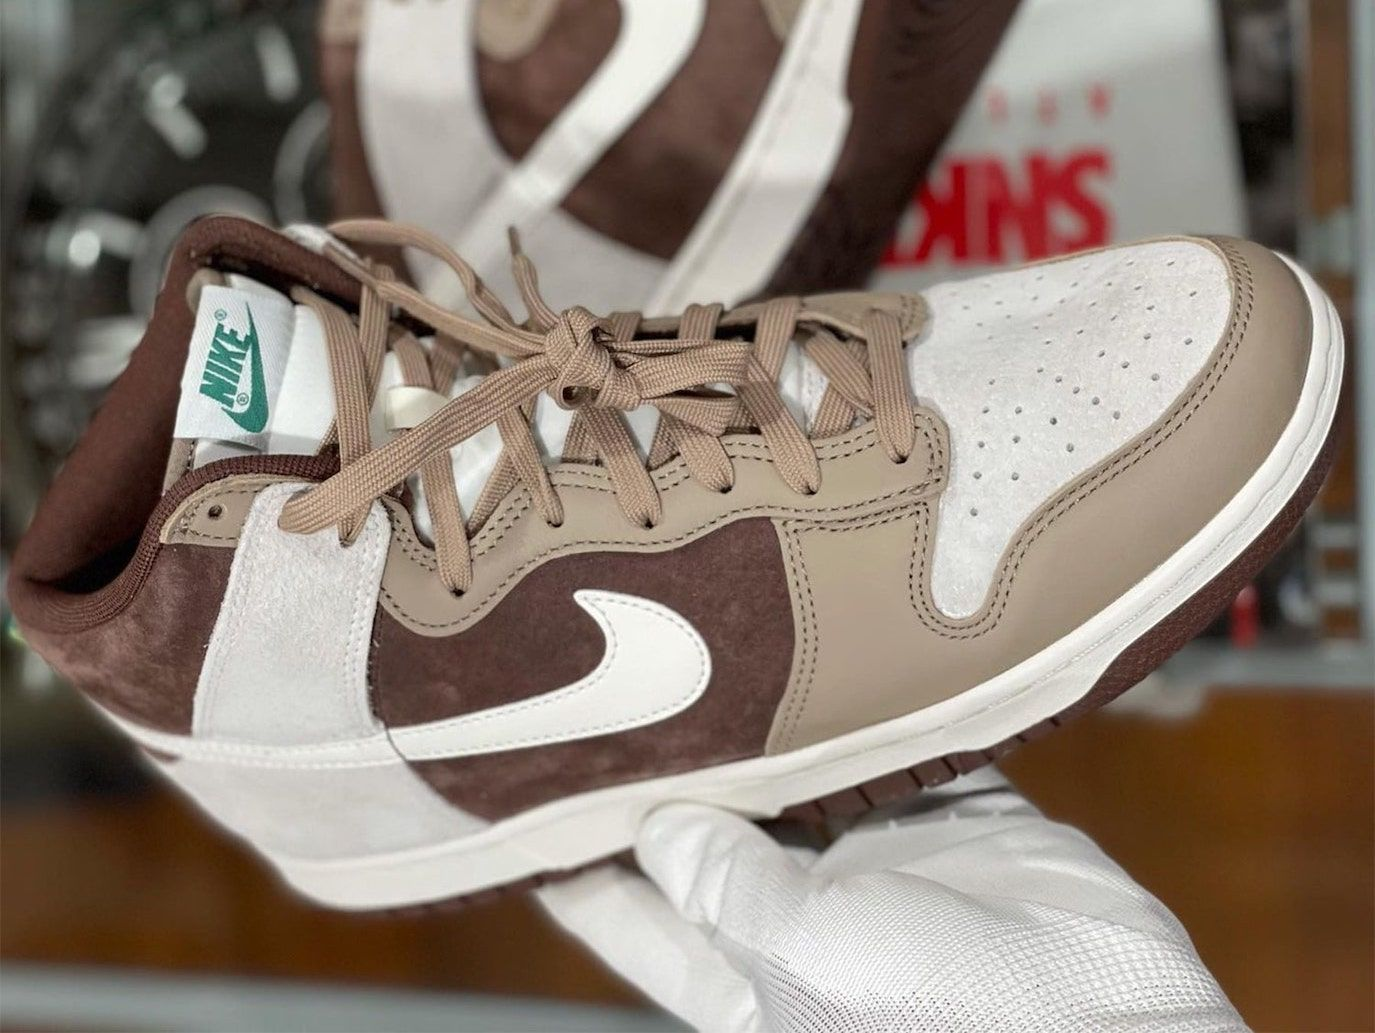 In-Hand: The Nike Dunk High 'Light Chocolate'